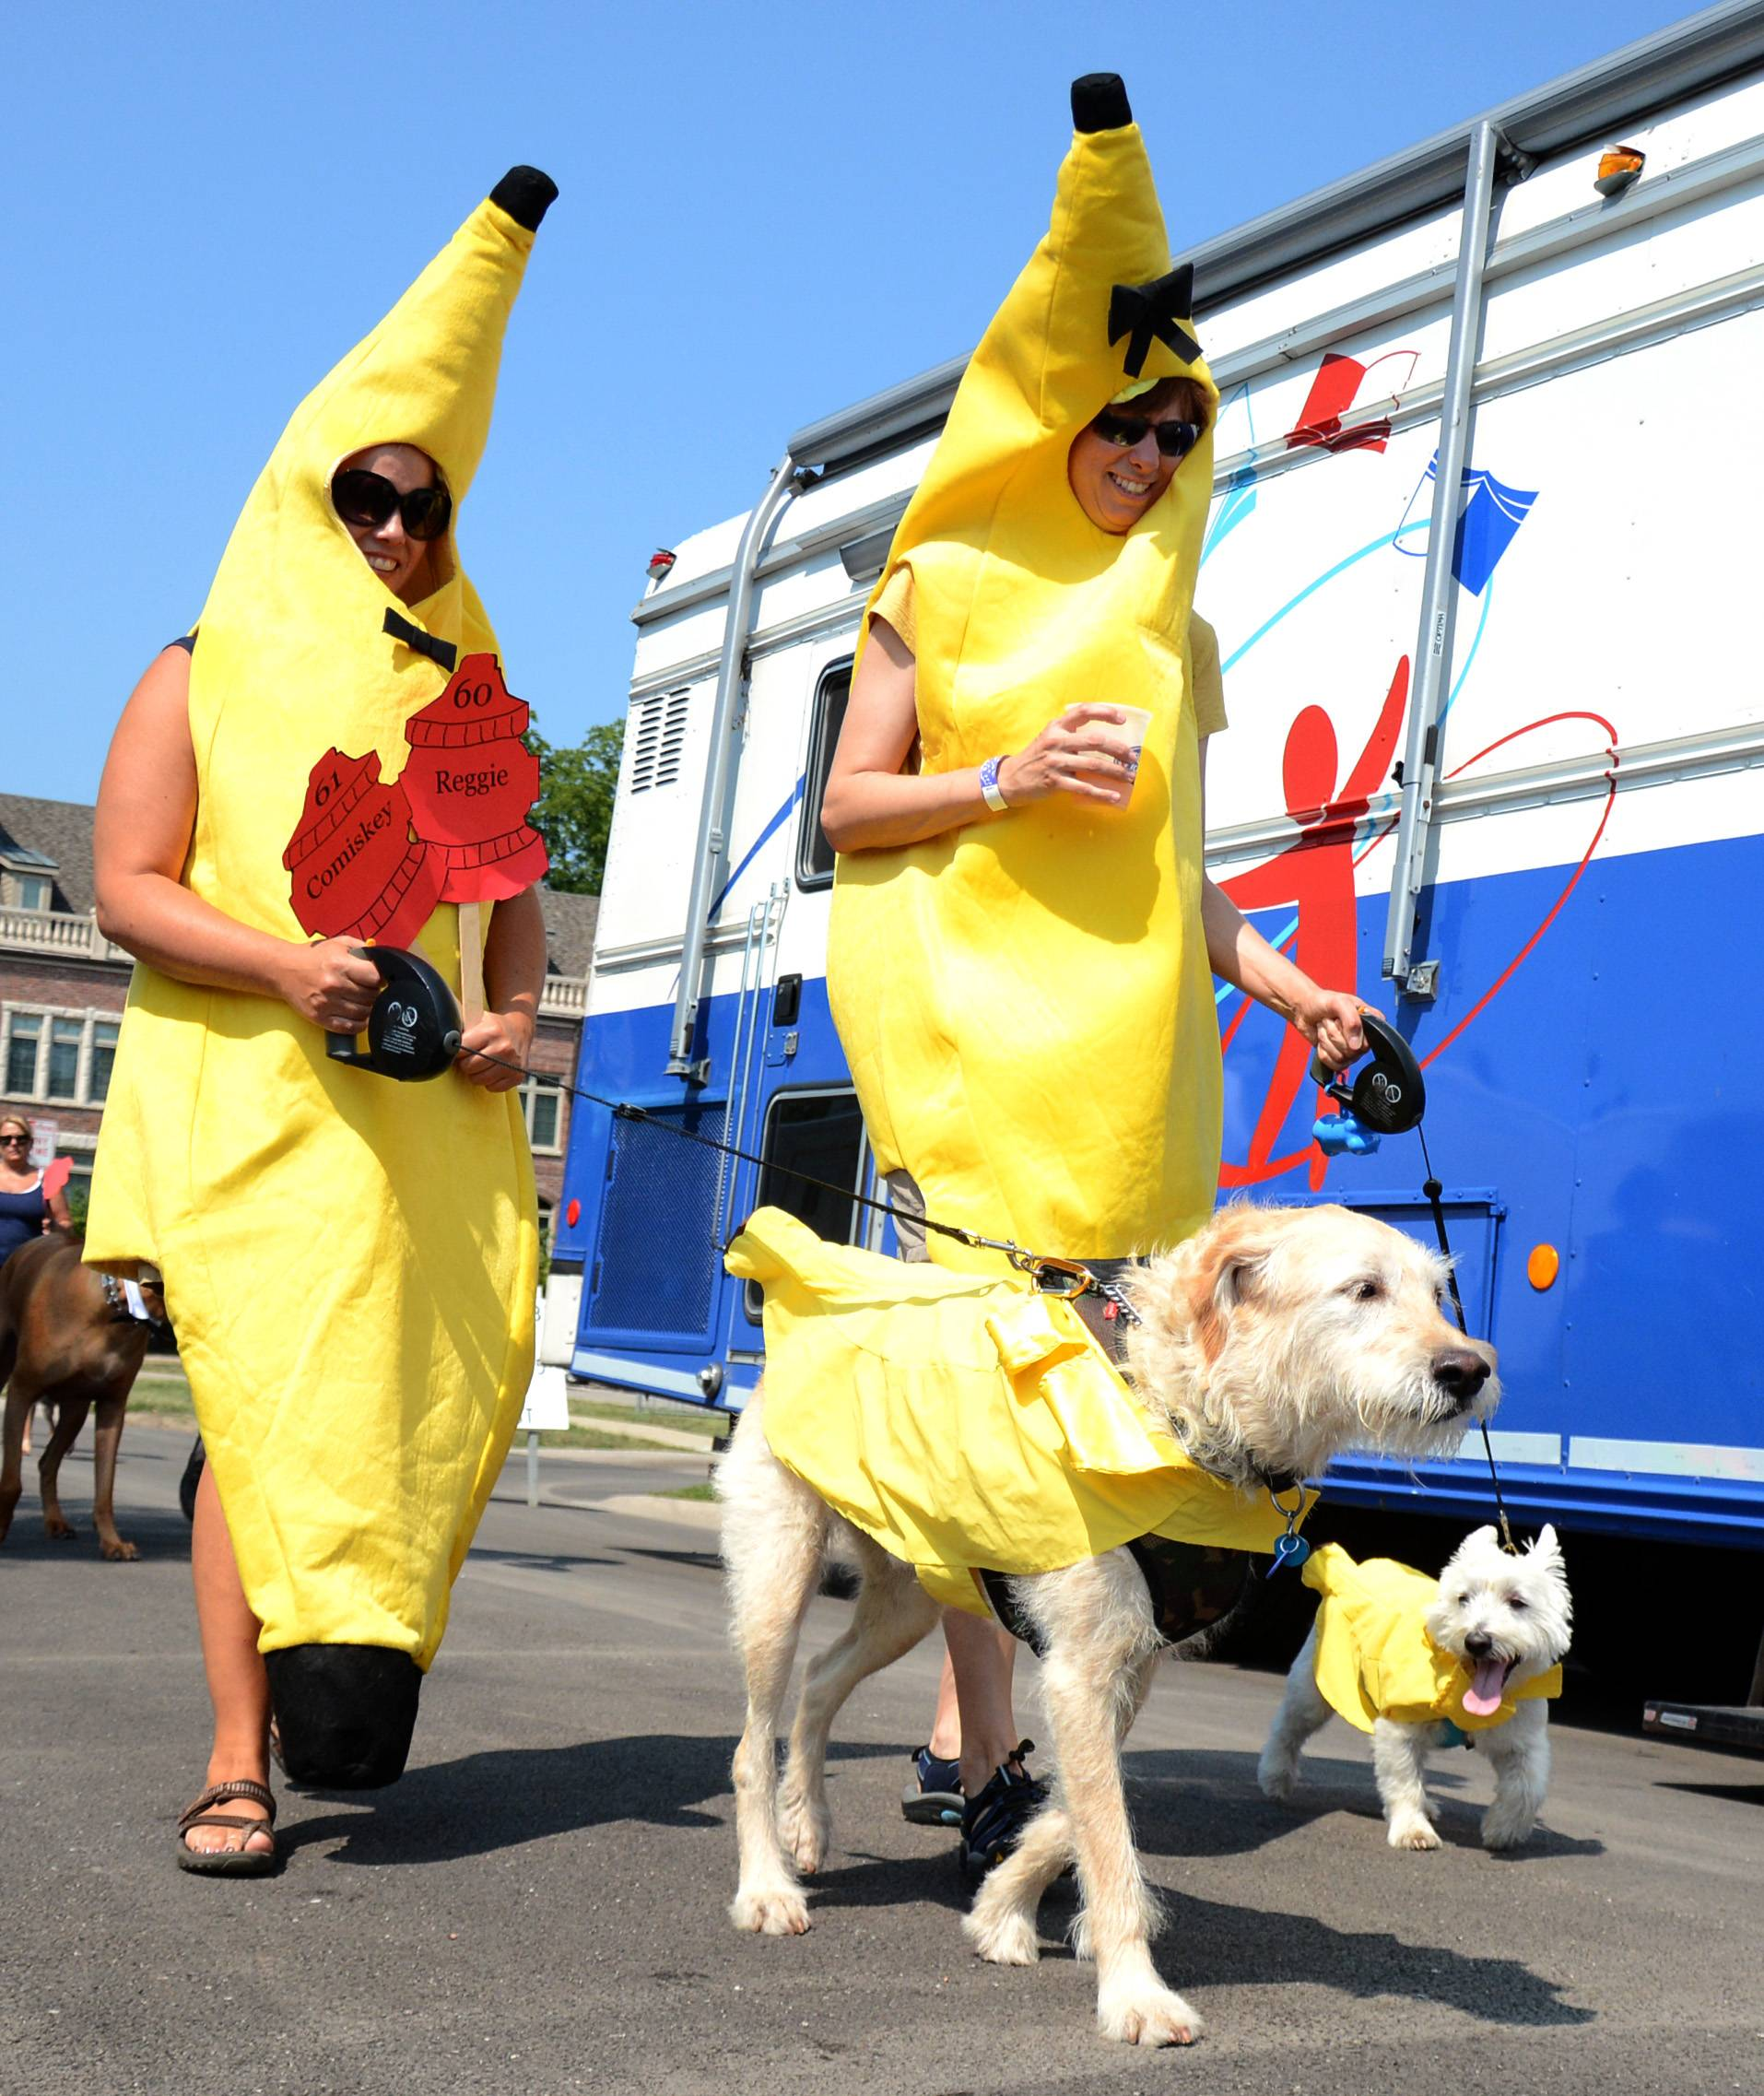 Pet owners and their companions are encouraged to dress up Sunday for the annual Sweet Pea Pet Parade in downtown Palatine. The parade kicks off at 11:30 a.m. at Towne Square, 150 W. Palatine Road.